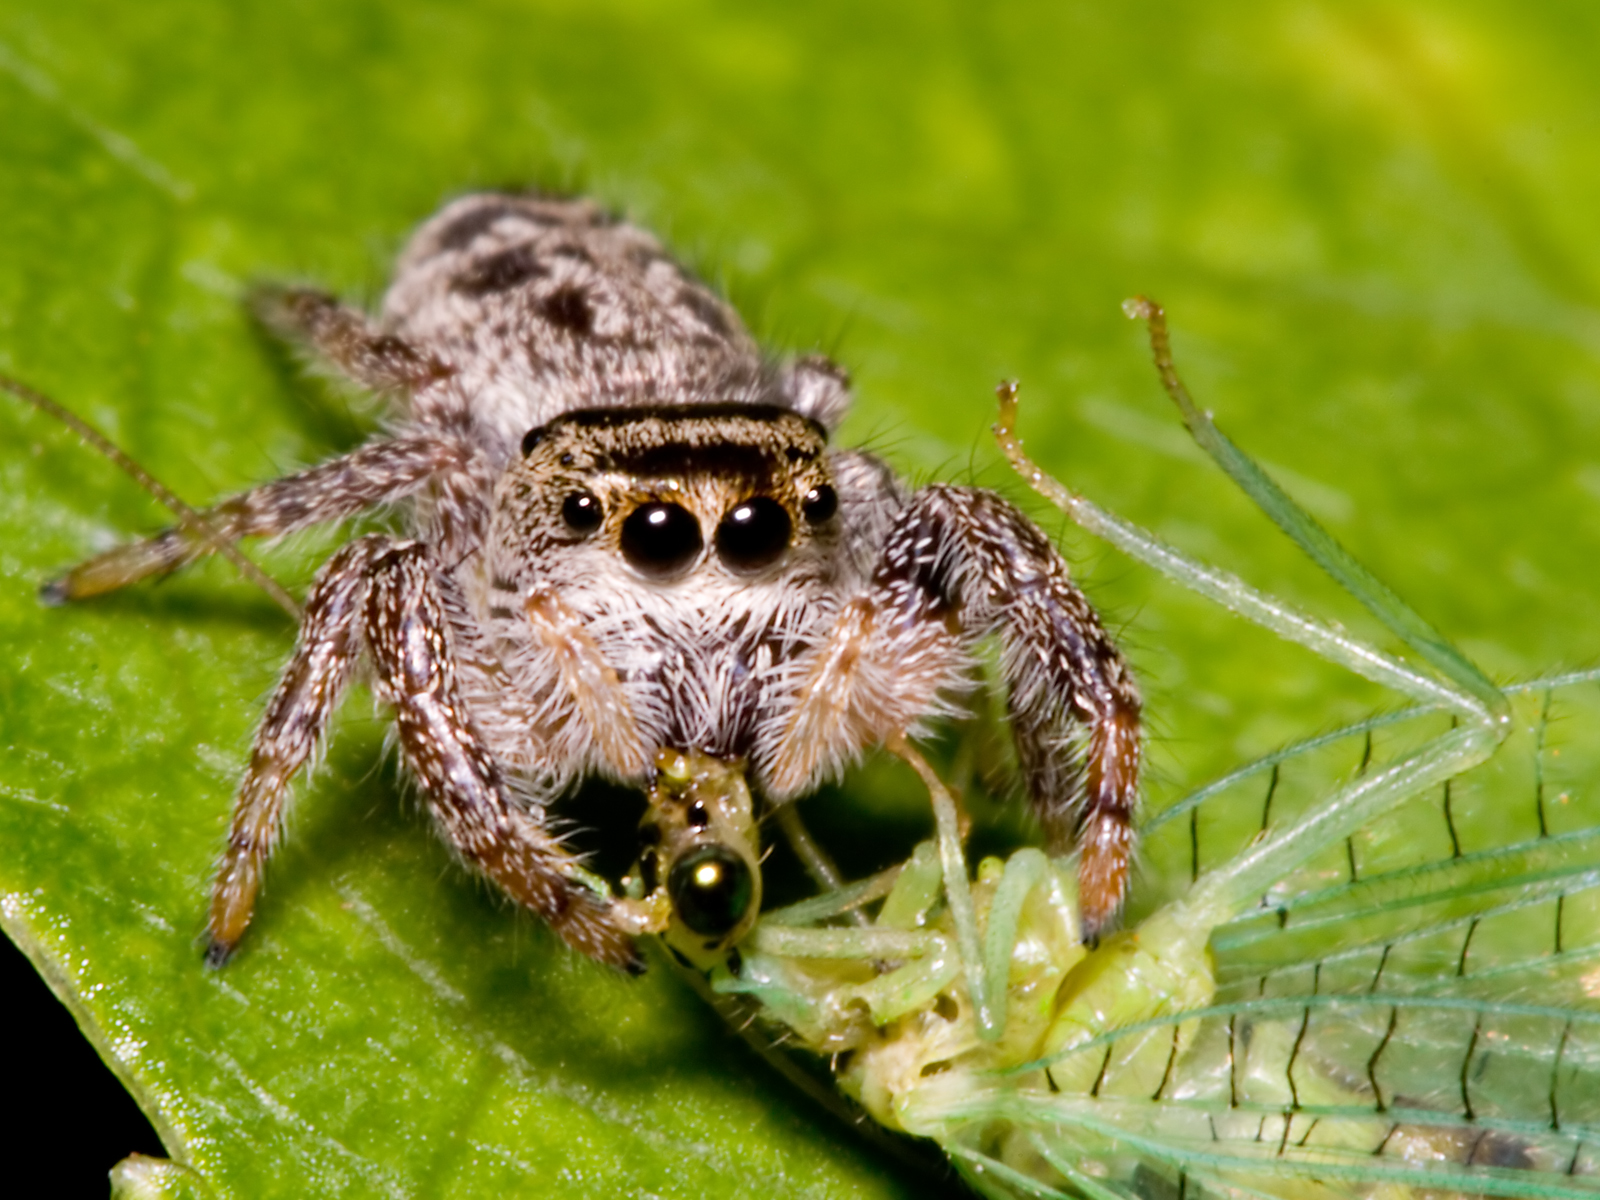 jumping spiders donu0027t share 2 by twitch1977